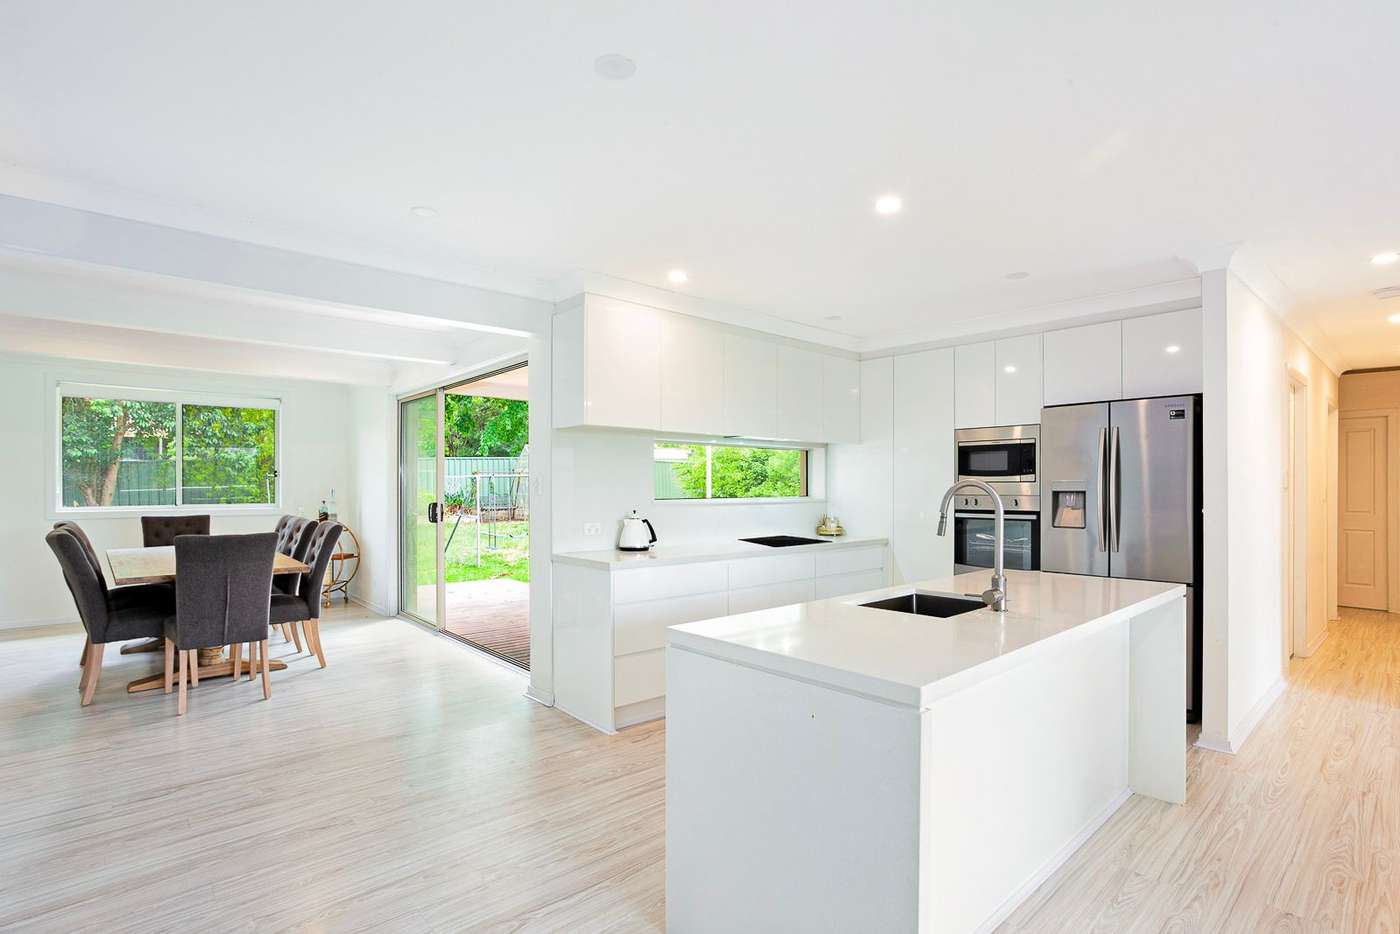 Main view of Homely house listing, 4 Park Road, Baulkham Hills, NSW 2153